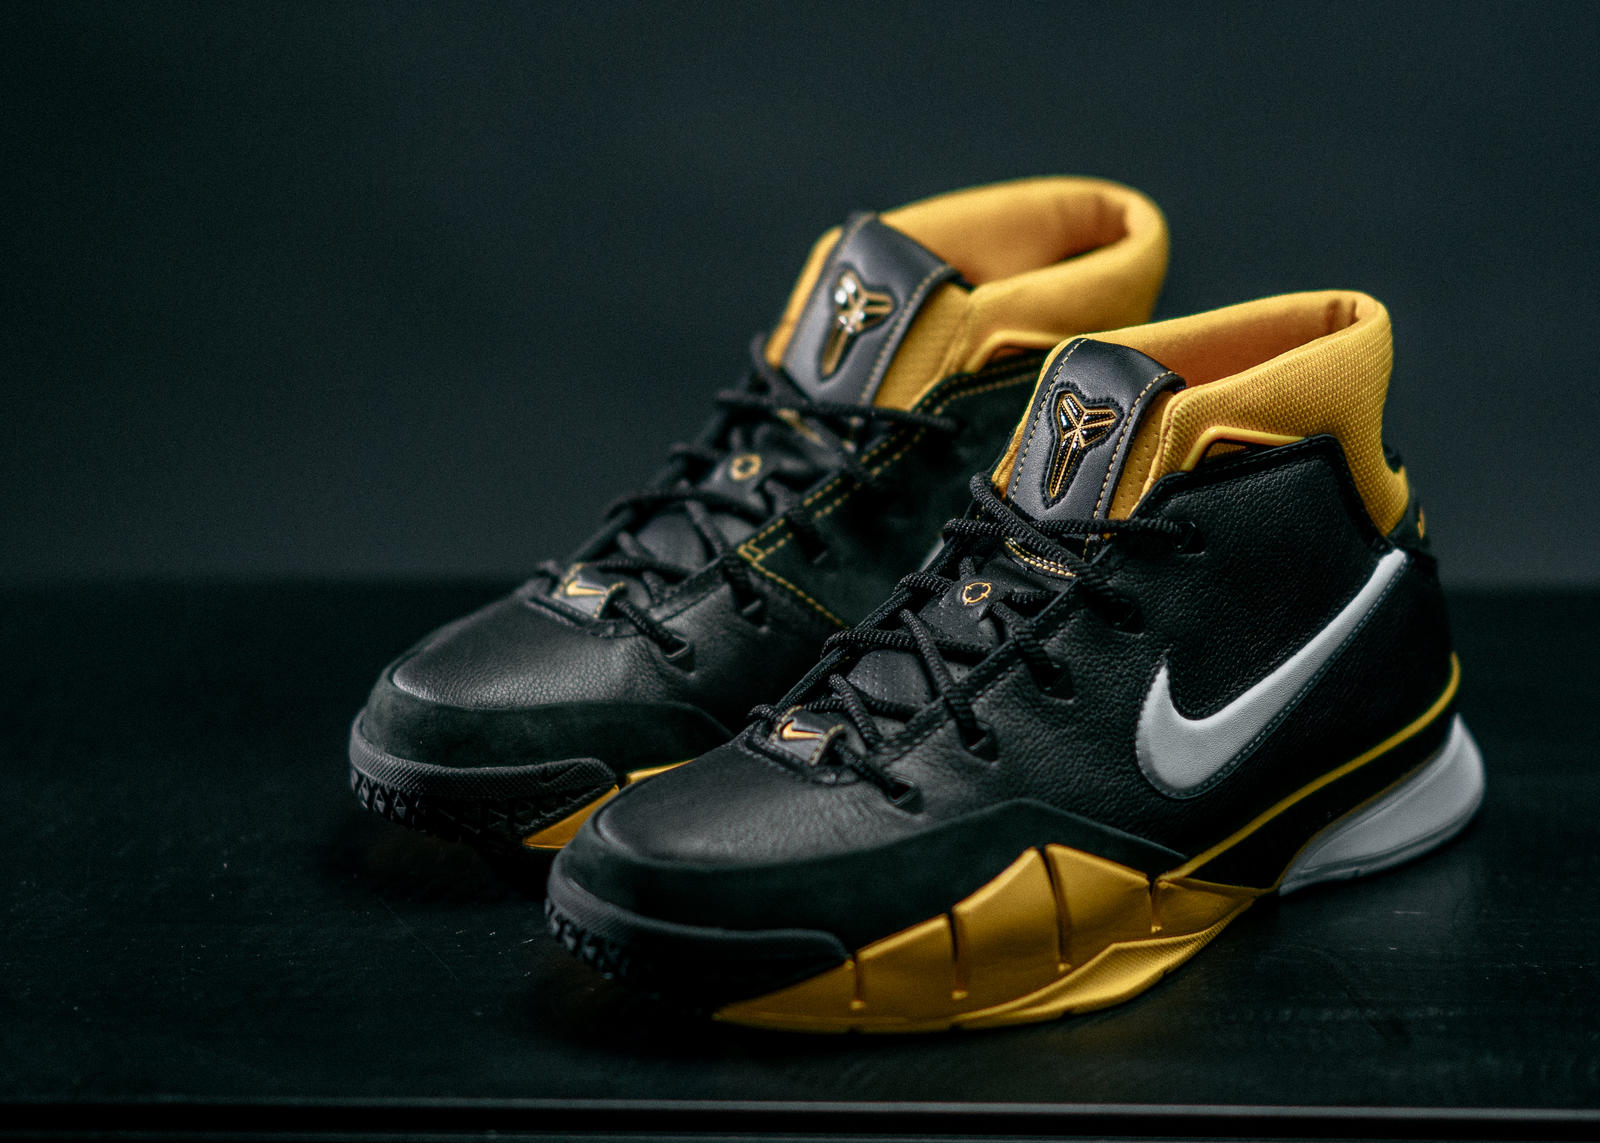 Kobe Bryant Continues to Impact Basketball With the Zoom Kobe 1 Protro.  Share Image. As Kobe Bryant ...